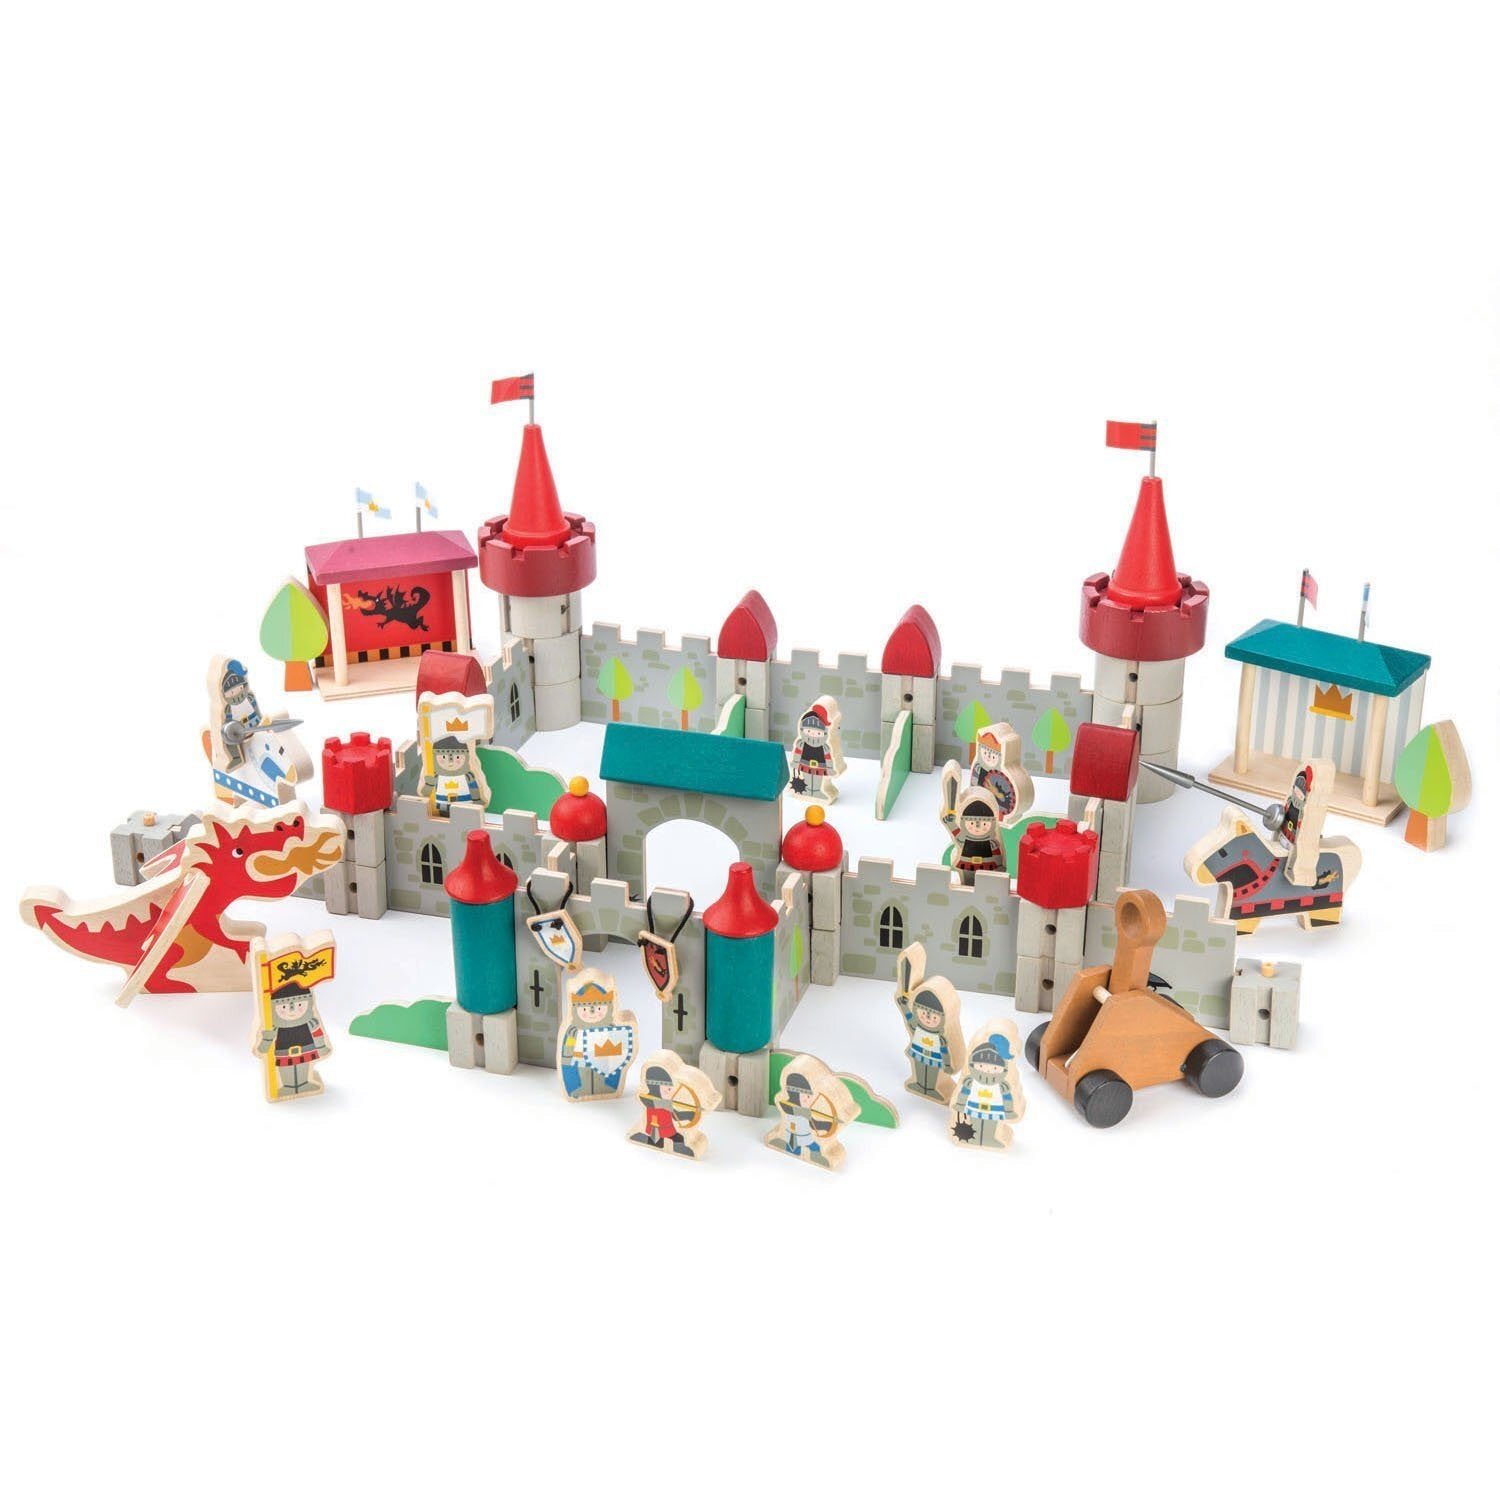 Royal Castle by Tenderleaf Toys Tenderleaf Toys Toys at Little Earth Nest Eco Shop